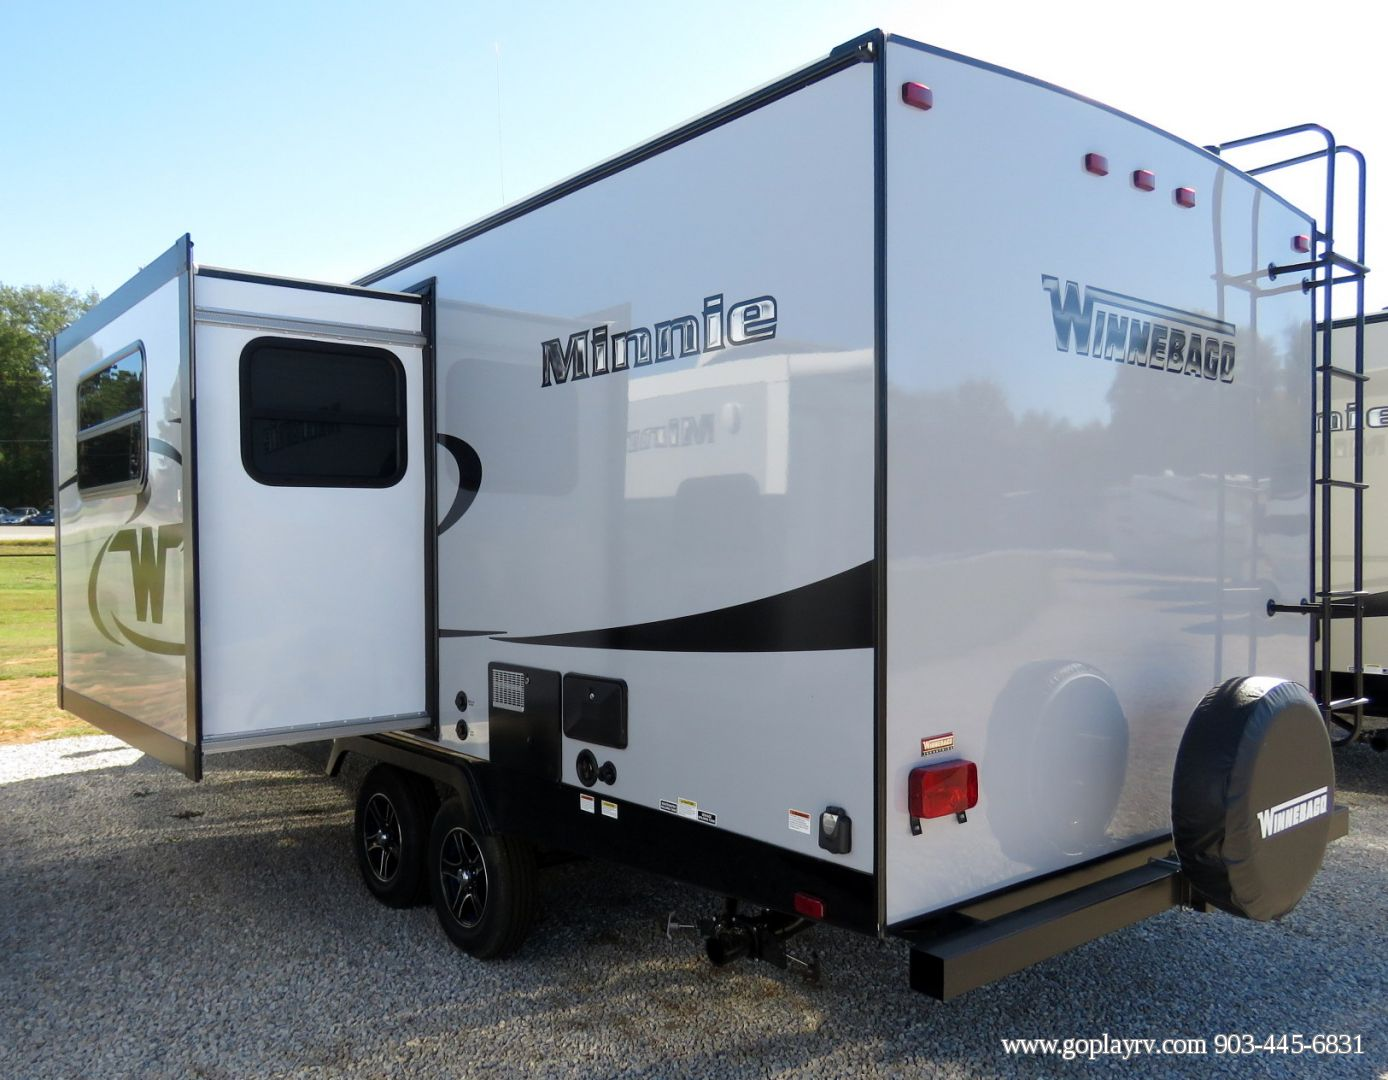 Winnebago minnie photo - 9